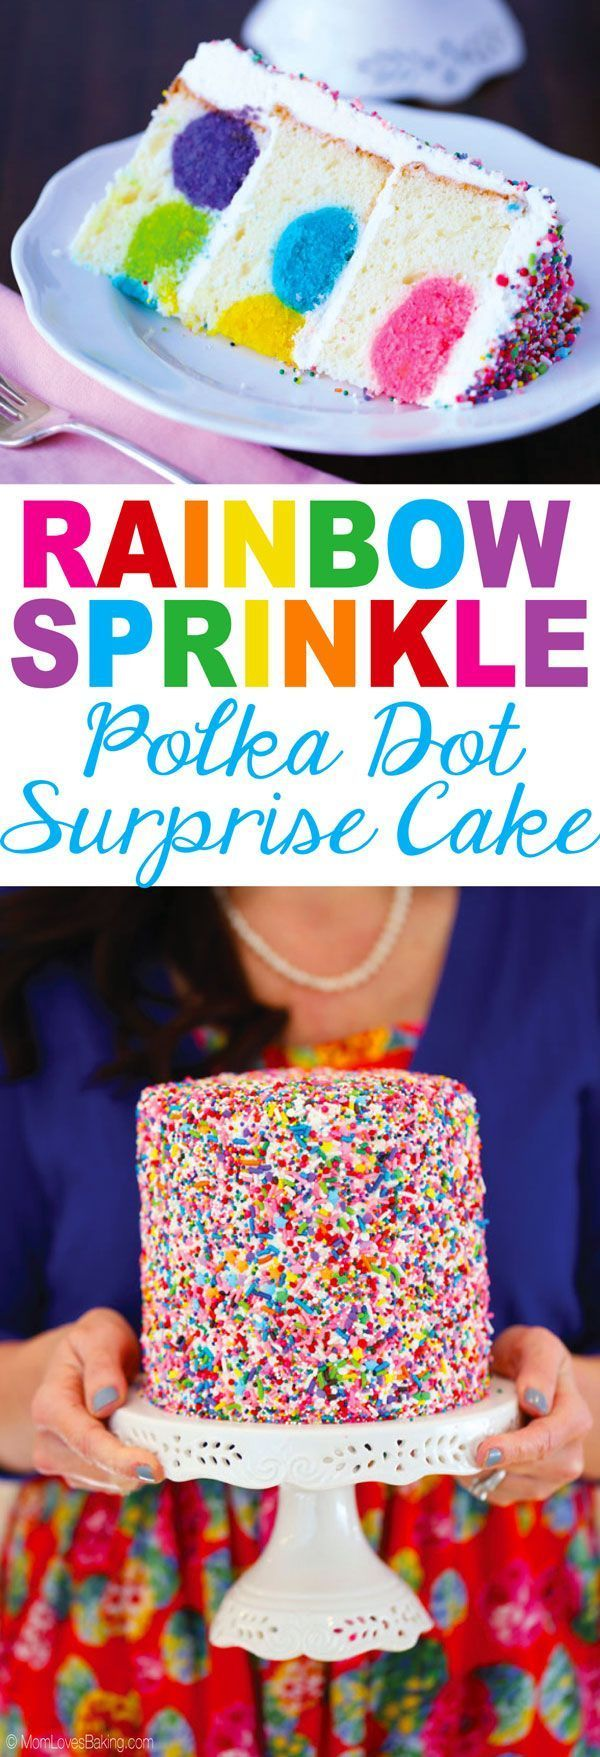 Rainbow Sprinkles Polka Dot Surprise Cake is a white cake with colored cake balls inside, buttercream frosting on top and lots of sprinkles. Recipe on MomLovesBaking.com